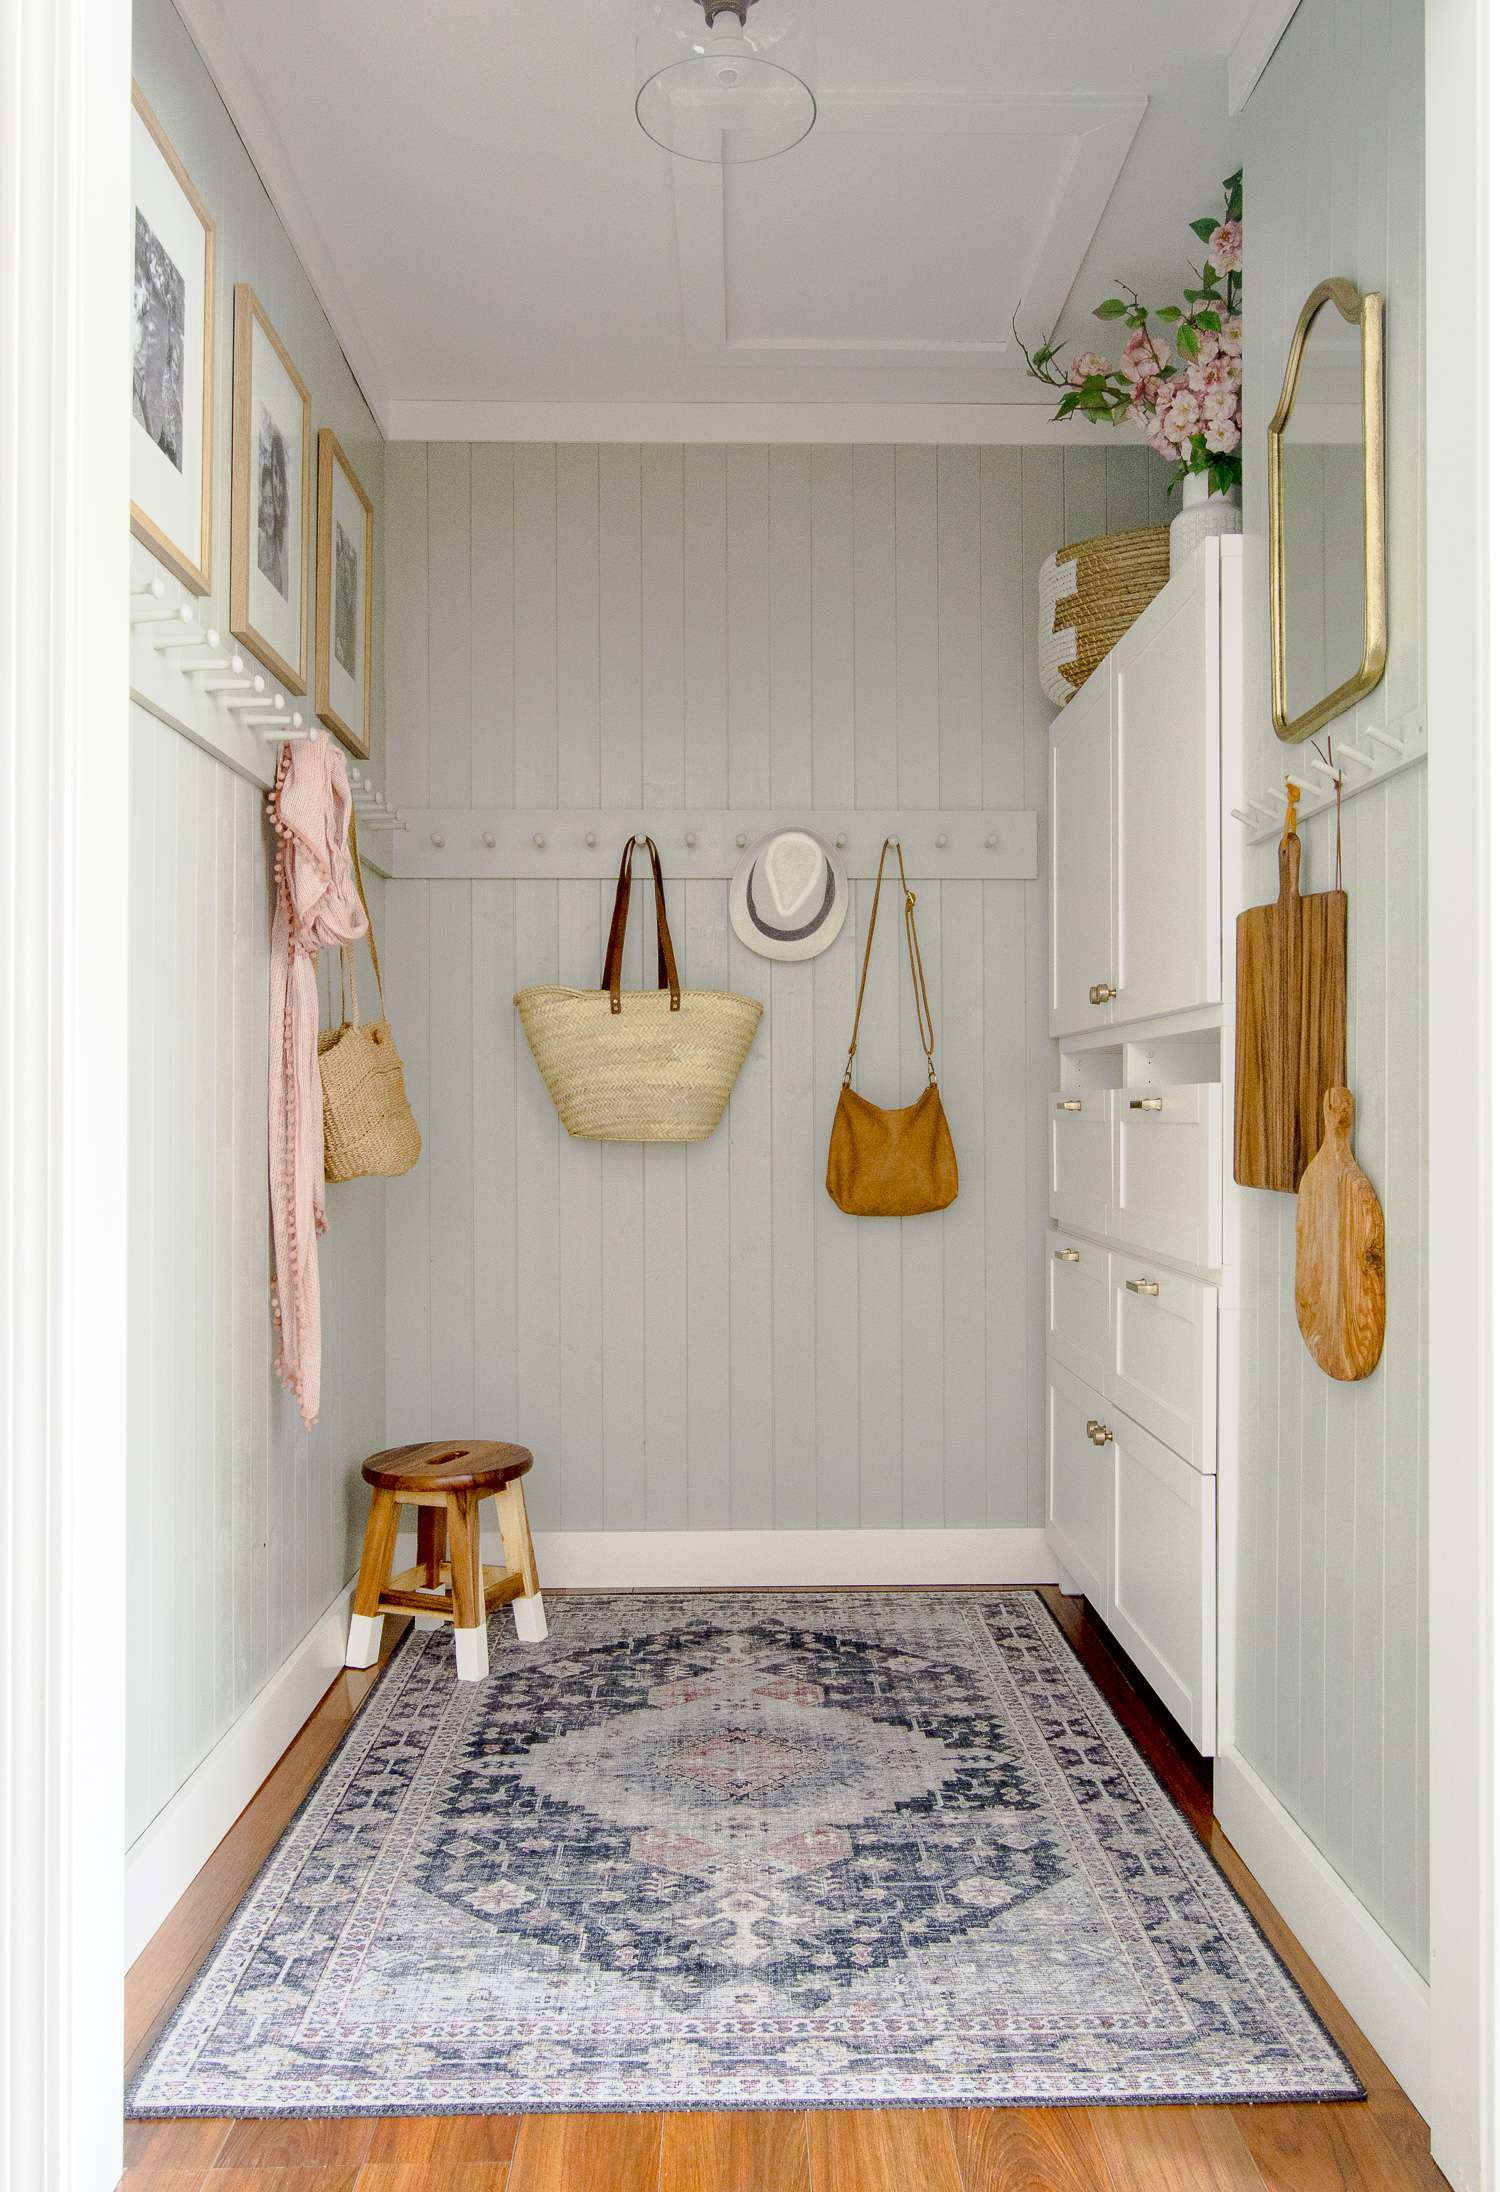 Small mudroom ideas with built in storage.